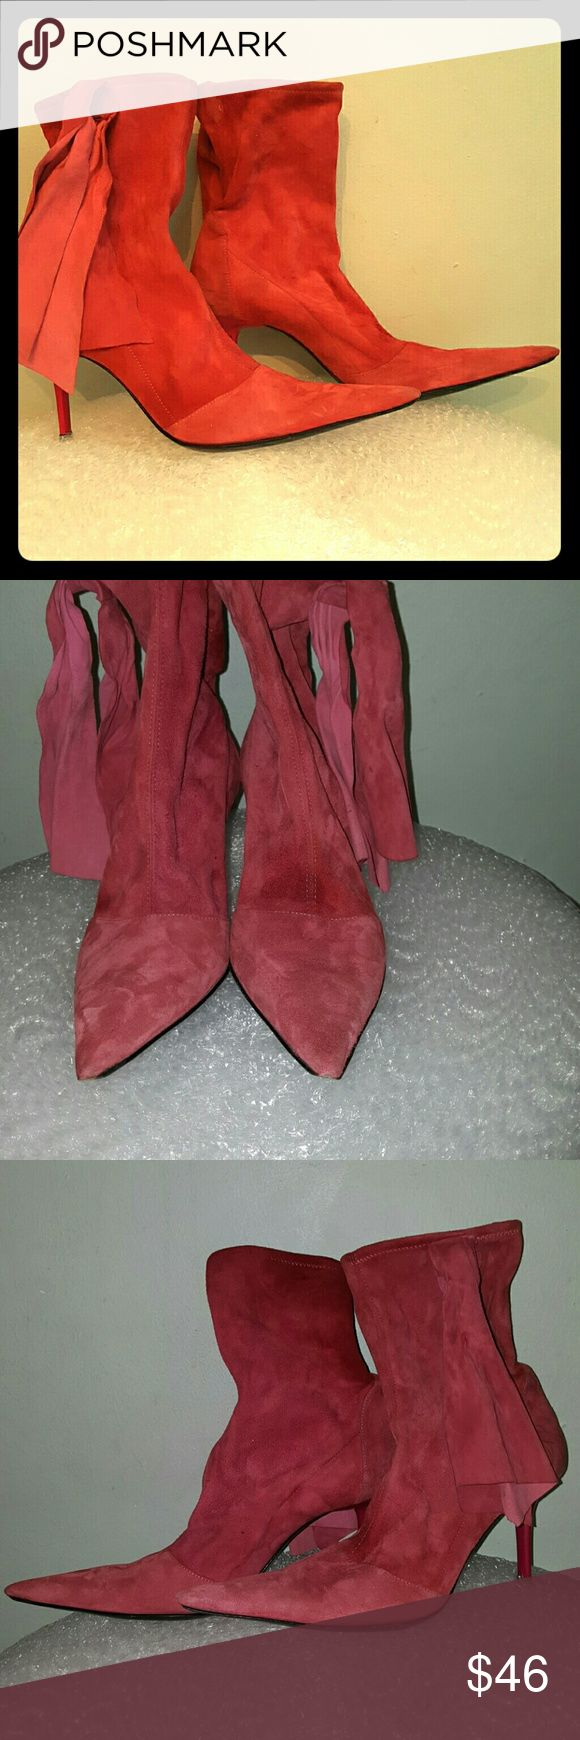 """Les Tropeziennes pink suede size 8 boots 3"""" lacquered heel. Pointy toe. Mix of Man-made and suede. Side ties. Minimal wear to the soles. Some dark marks to the upper, couple of smudges to the heels, see pics. Left boot has a stain at the front. Made in Italy. Les Tropeziennes Shoes Ankle Boots & Booties"""